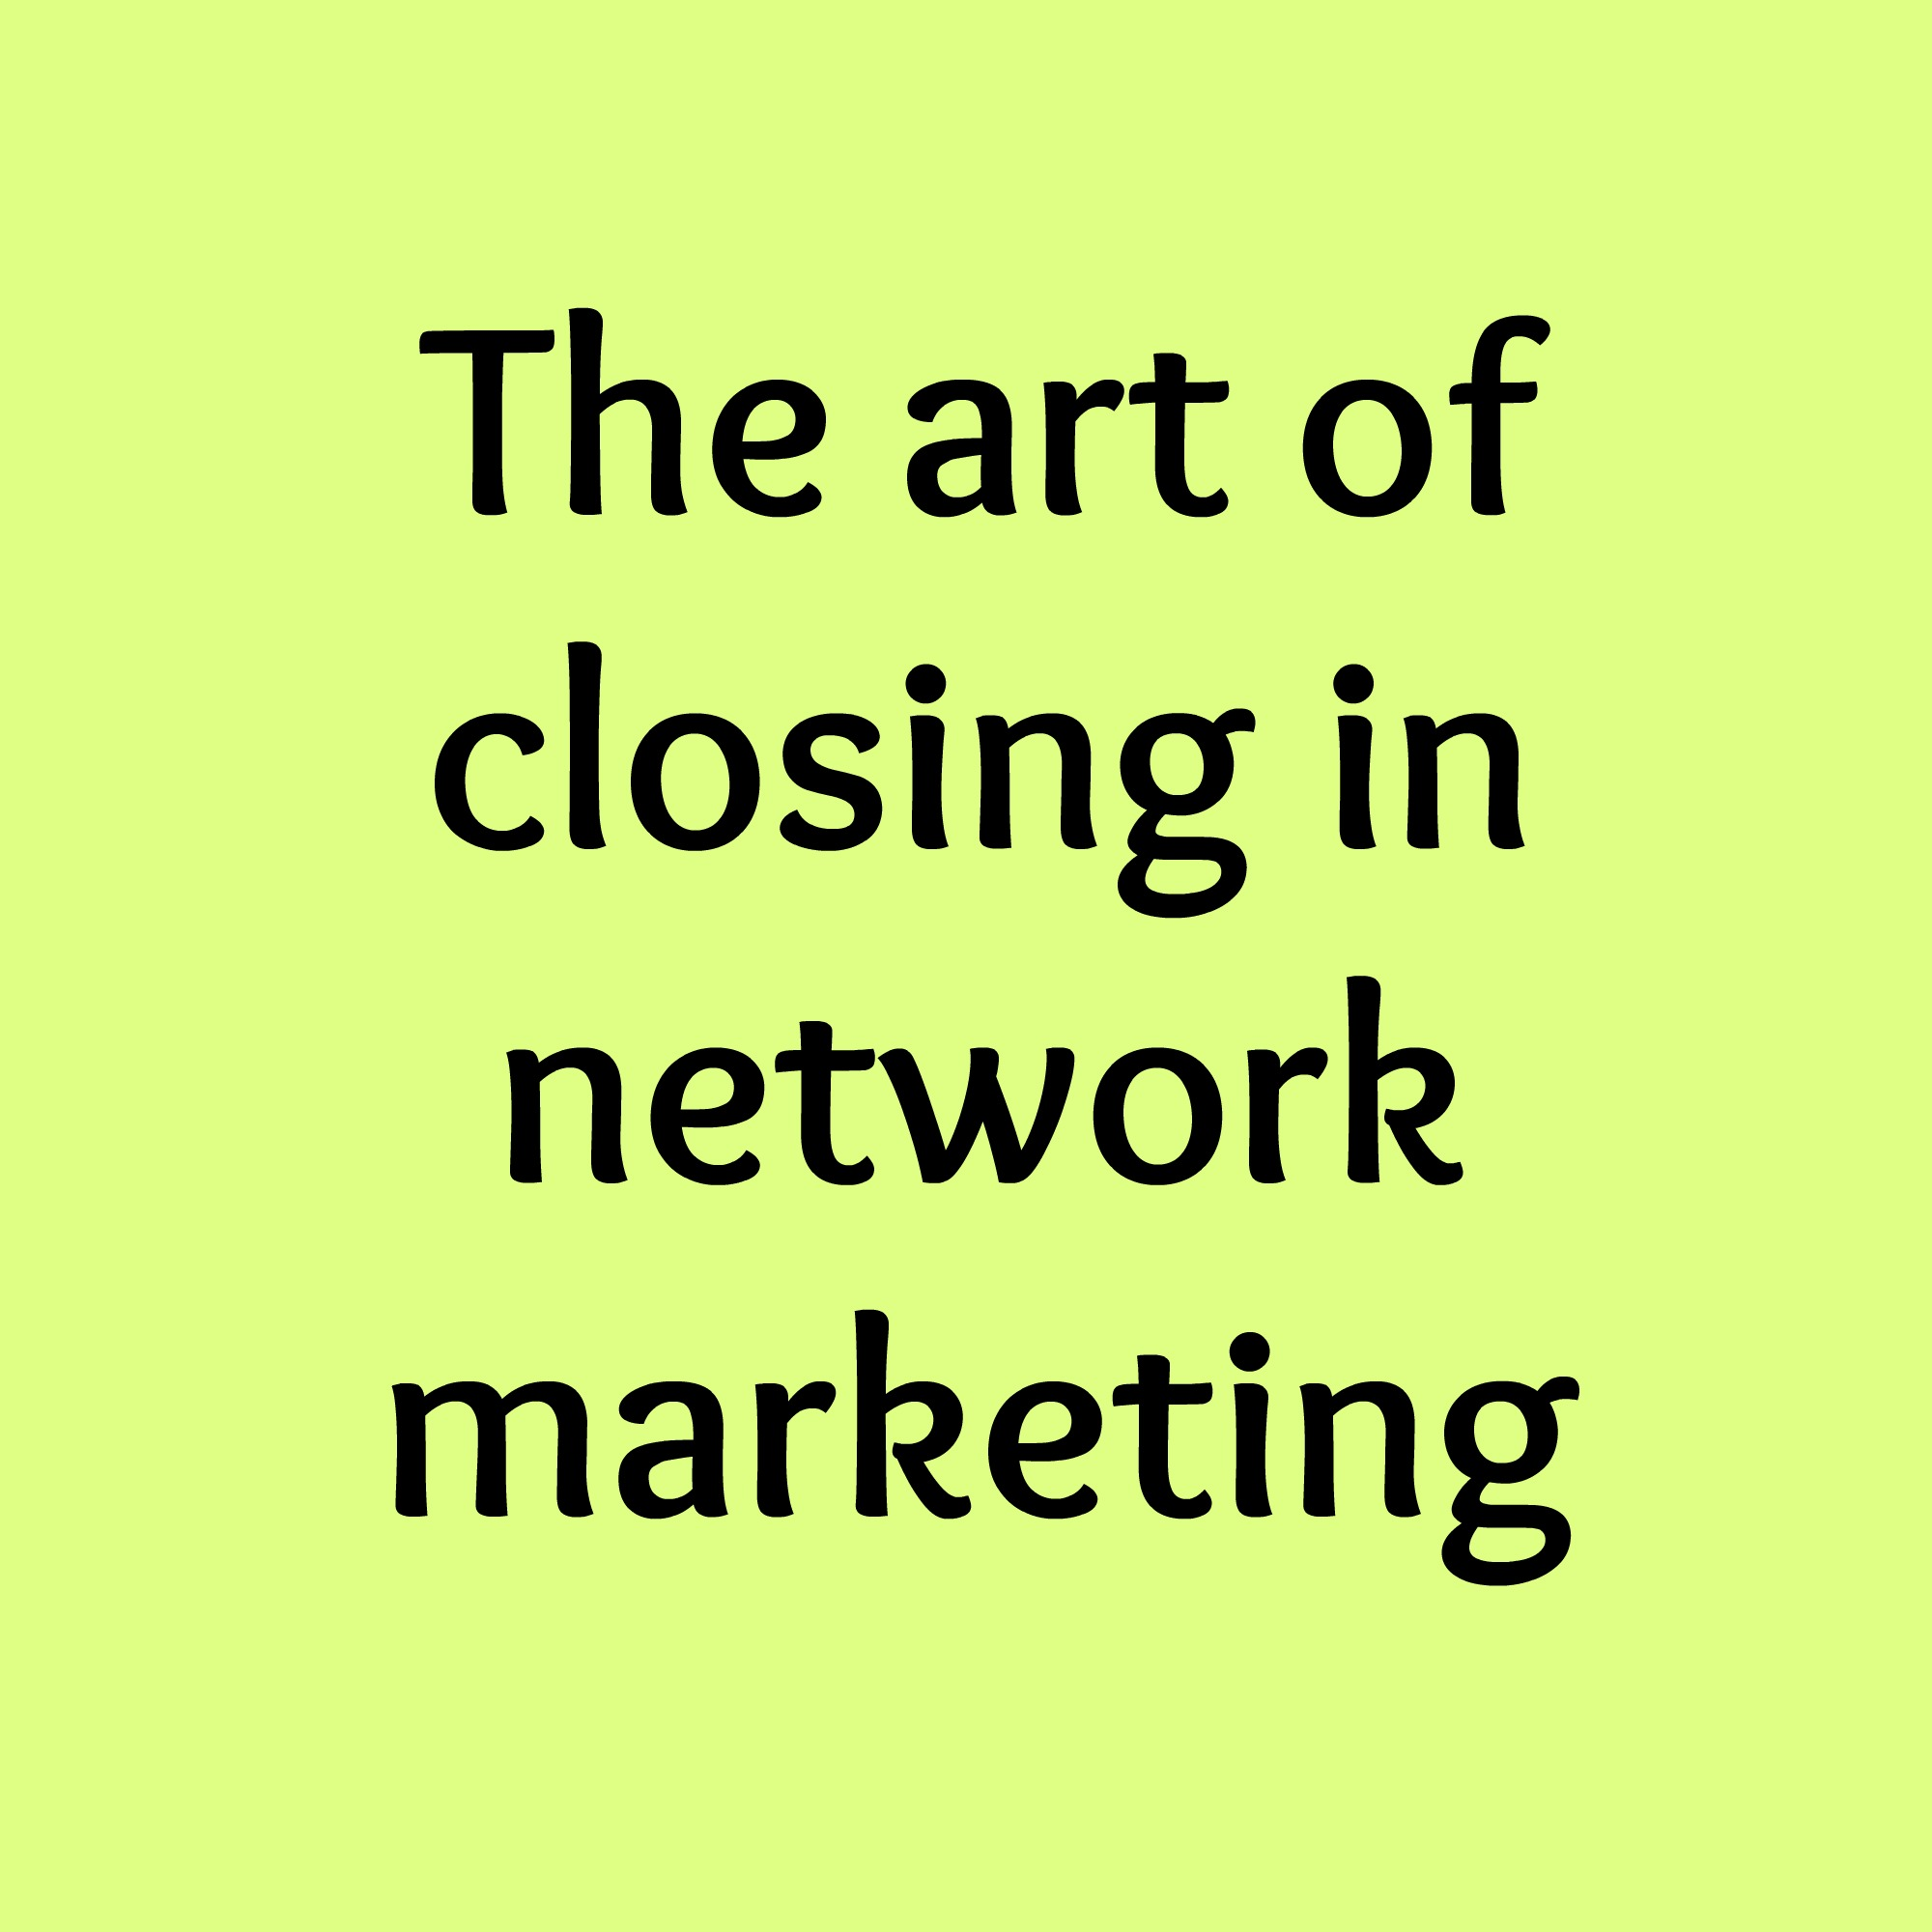 The Art of Closing in Network Marketing